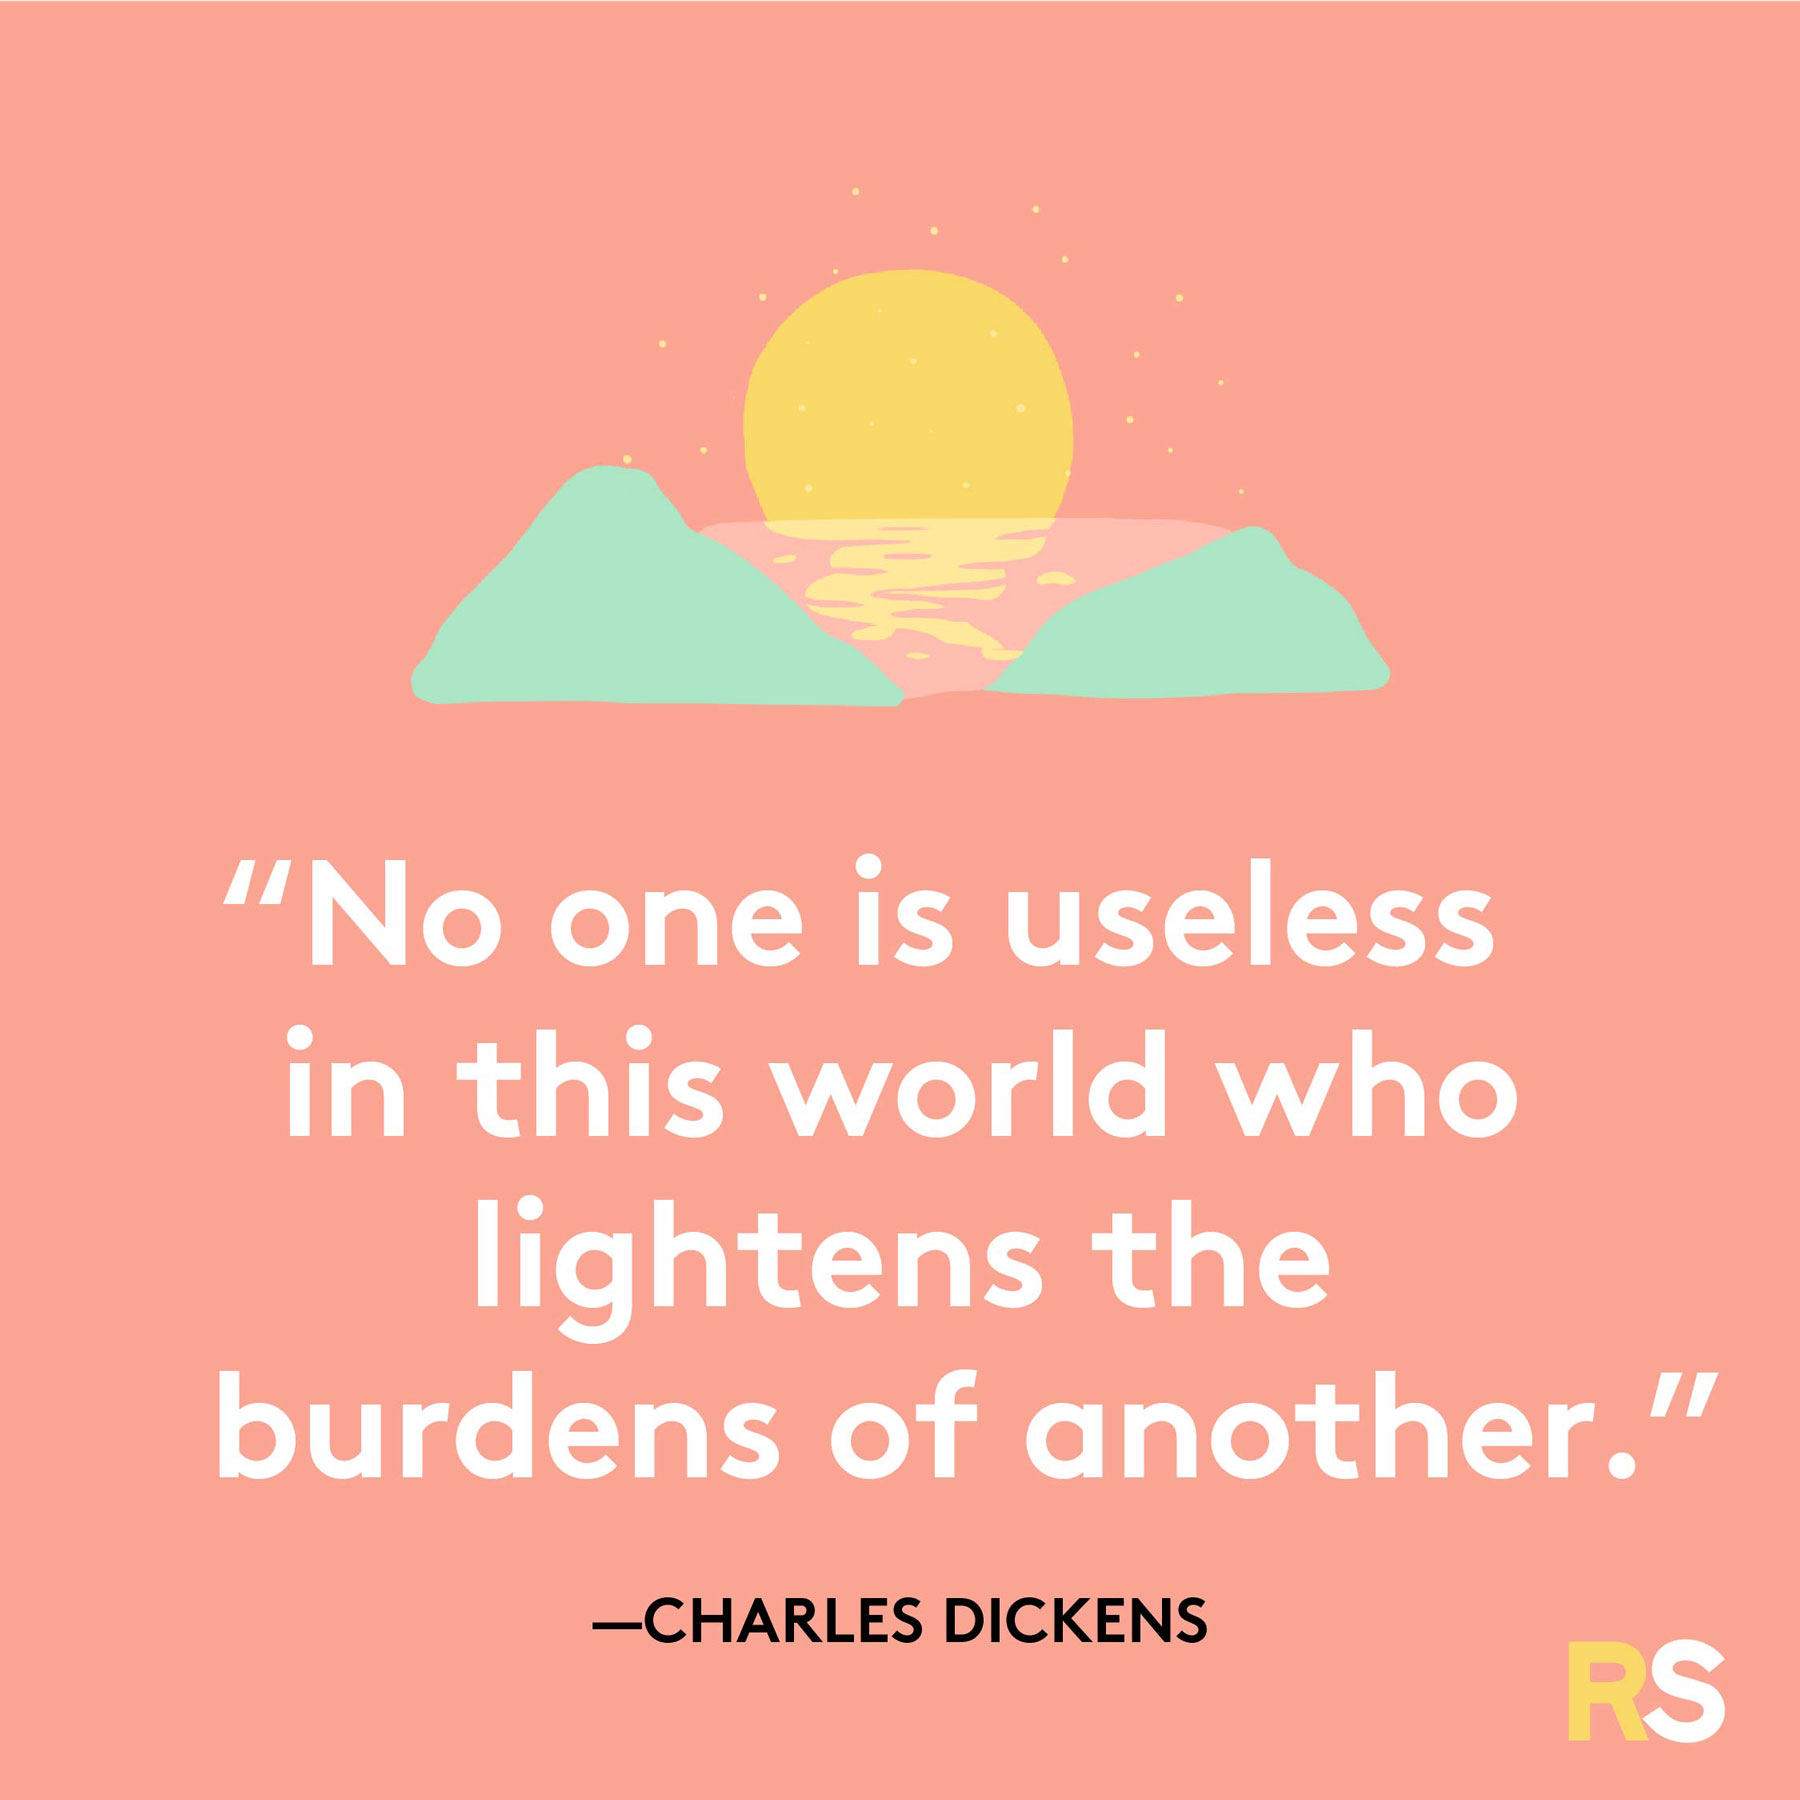 Positive motivating quotes, captions, messages – Charles Dickens quote